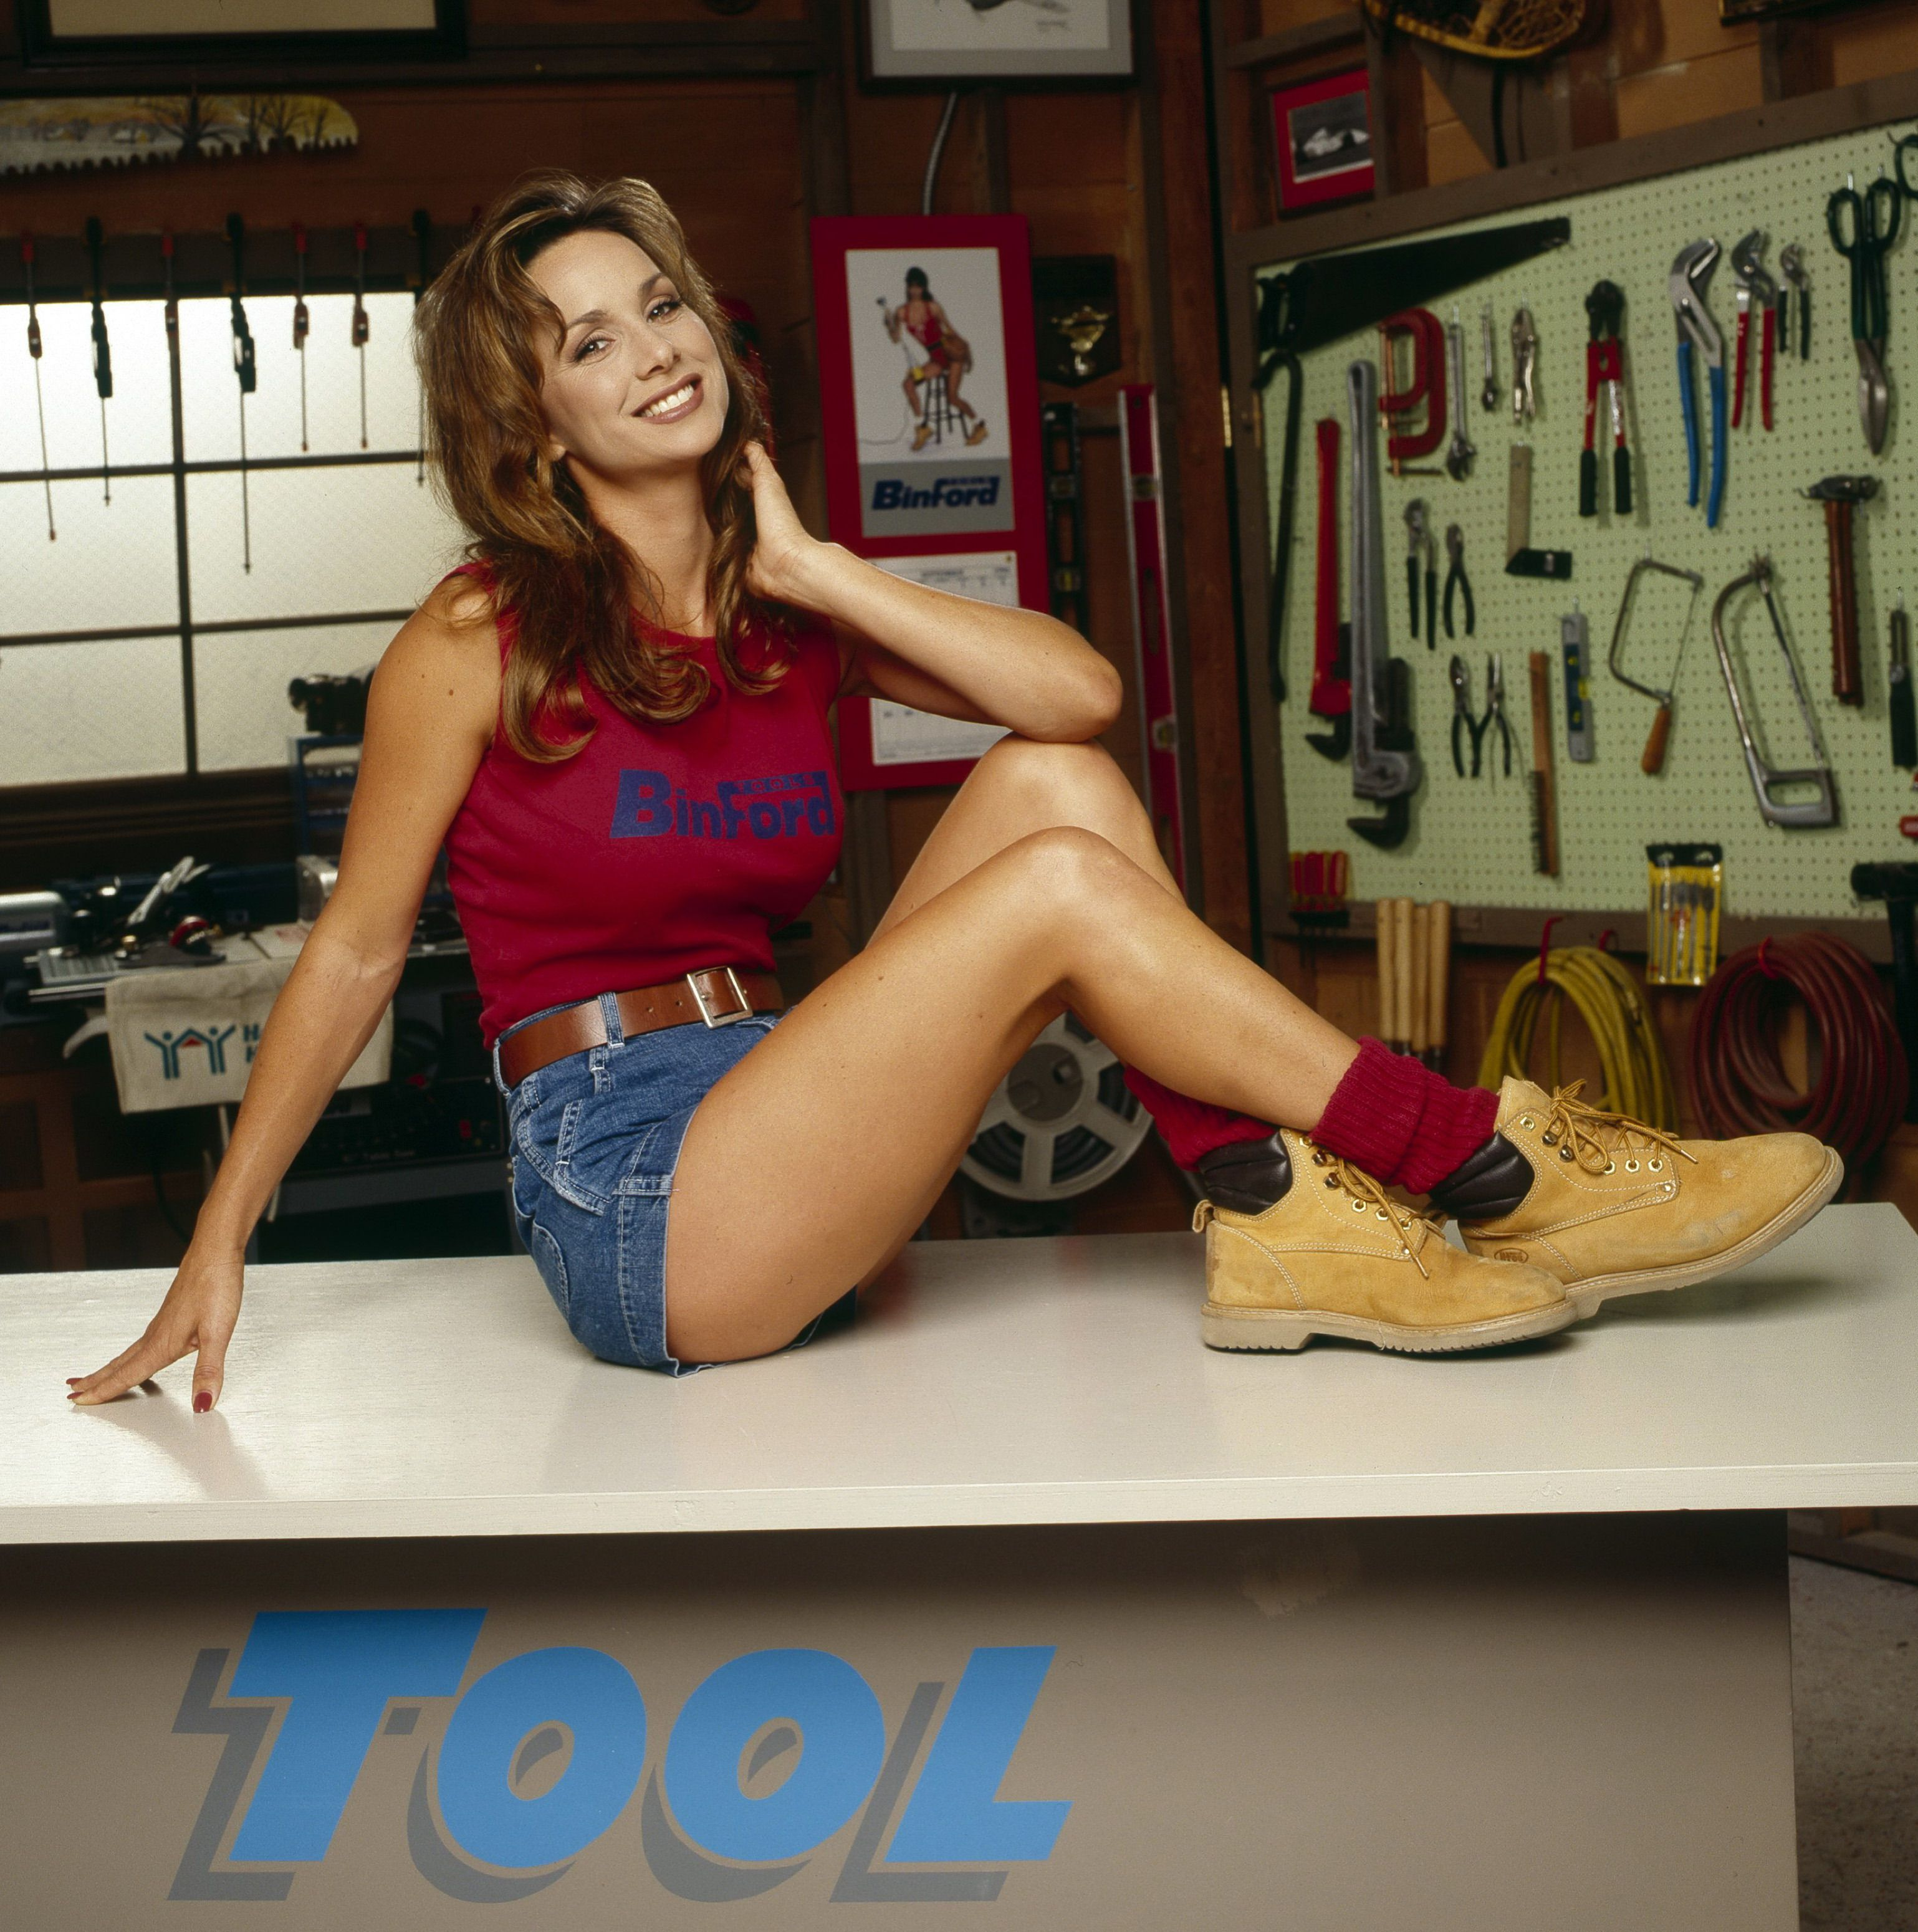 Home Improvement Star Debbe Dunning Is Going Country For: Update Debbe Dunning Stars In RFDTVS Dude Ranch Roundup